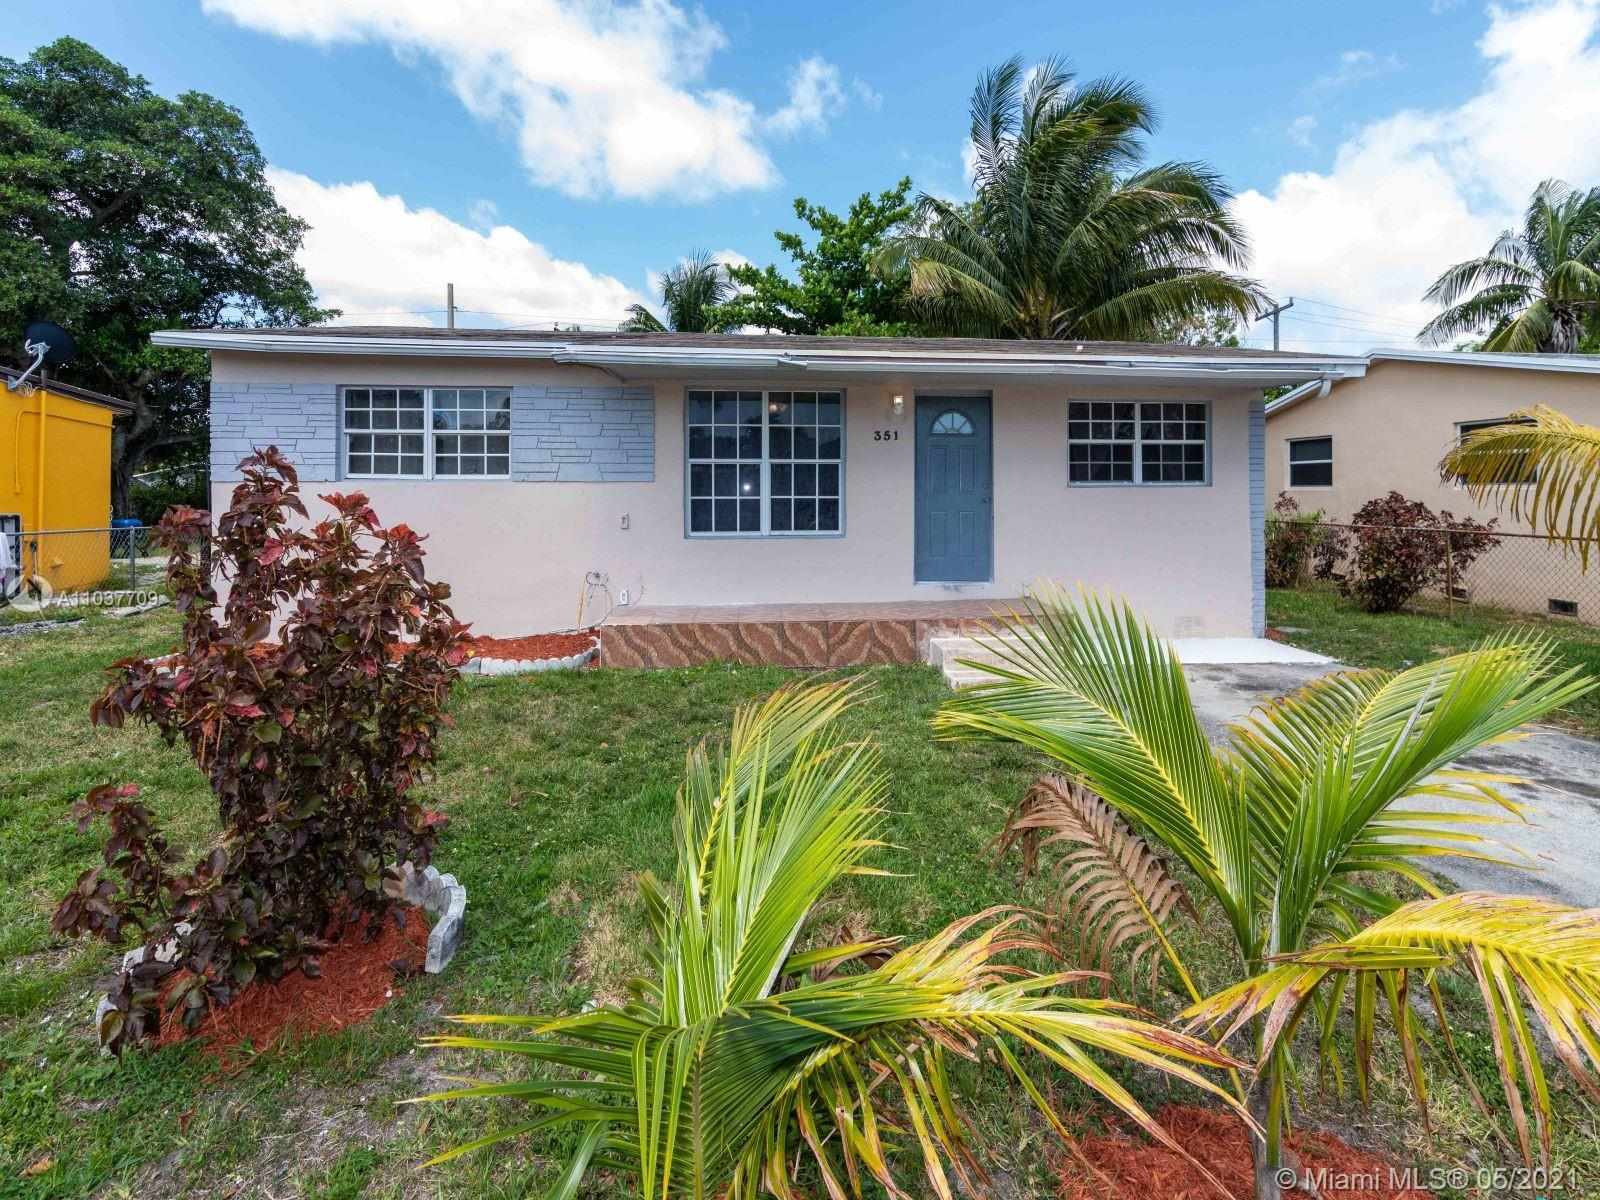 NICELY REMODELED 3 BEDROOMS, 2 BATHROOMS, SINGLE FAMILY HOME IN BOULEVARD GARDENS WITH NEW A/C, NEW